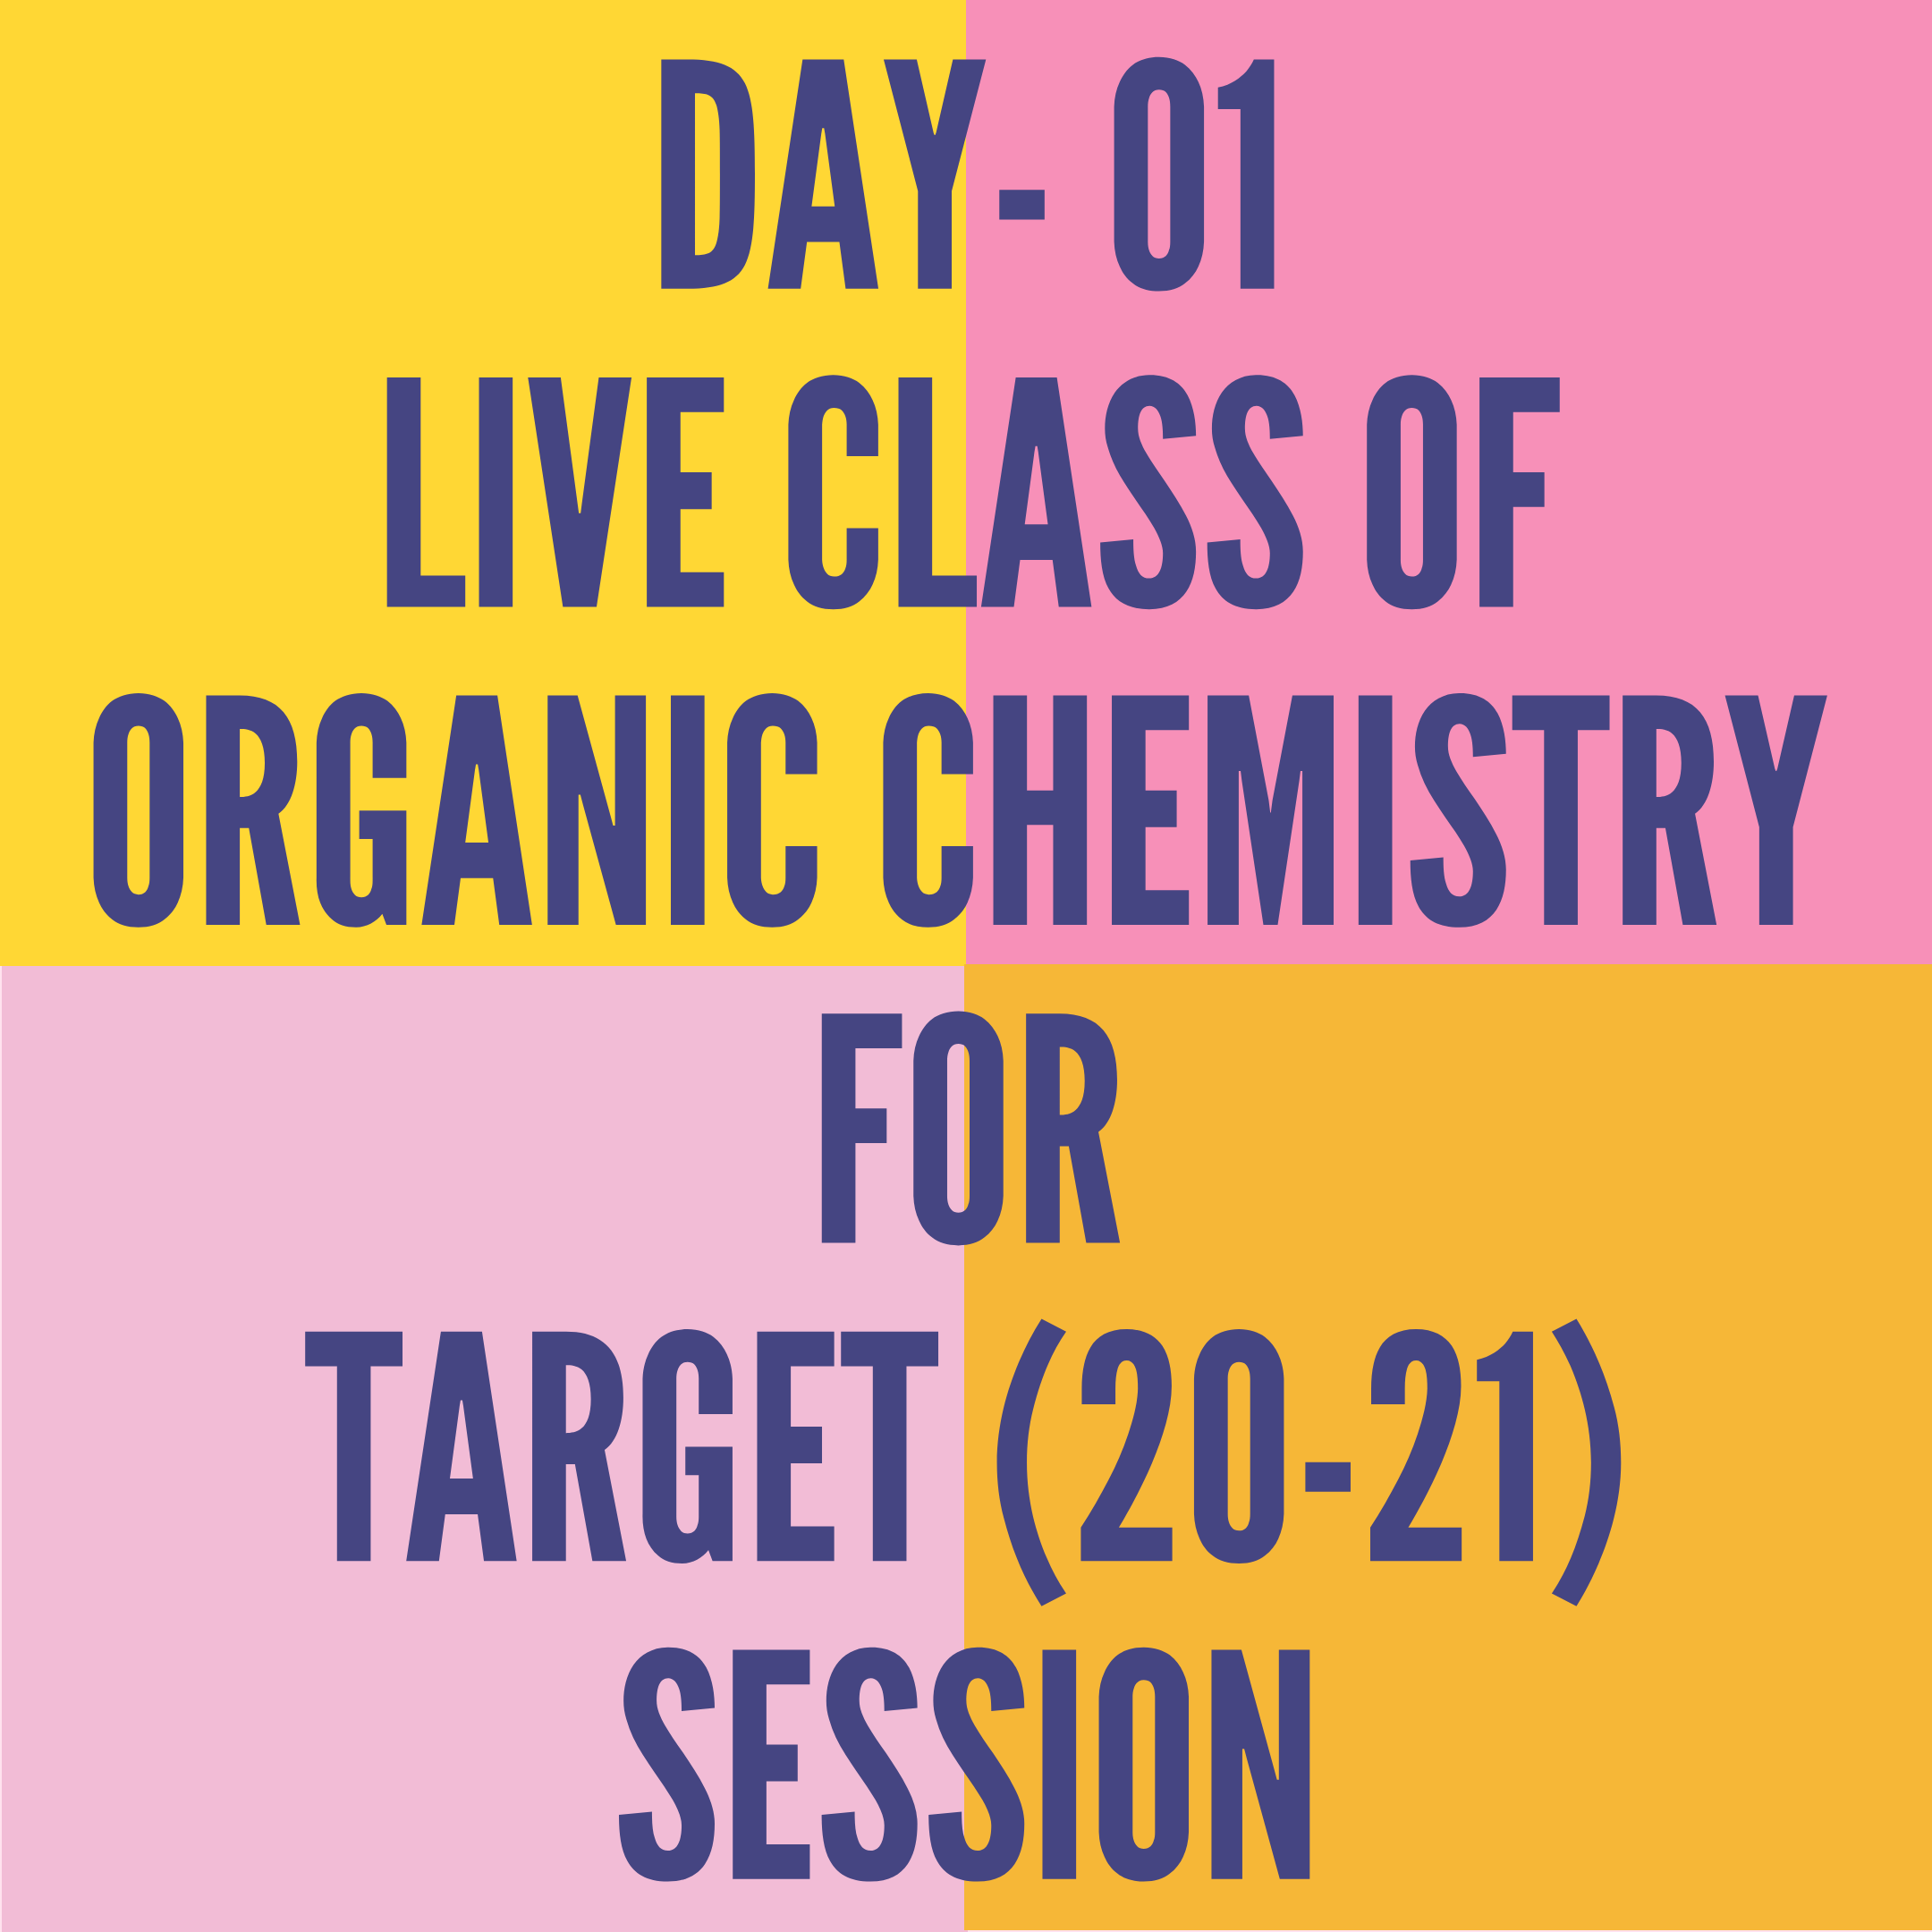 DAY- 01- LIVE CLASS OF ORGANIC CHEMISTRY  FOR TARGET (20-21) SESSION